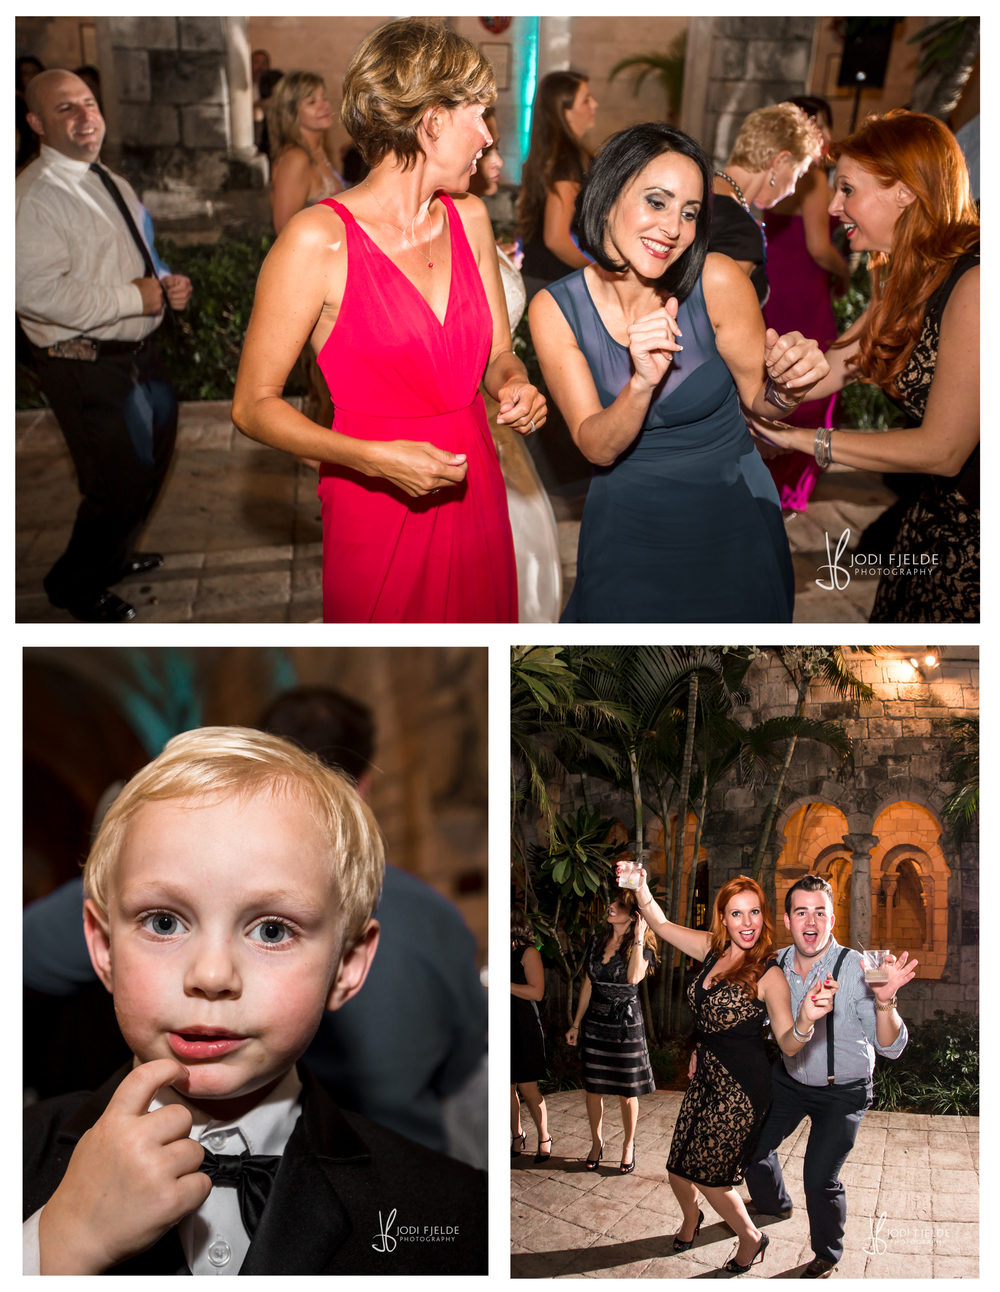 Ancient_Spanish_Monastery_Miami_Florida_wedding_Gio_Iggy_Jodi_Fjelde_Photography_20.jpg